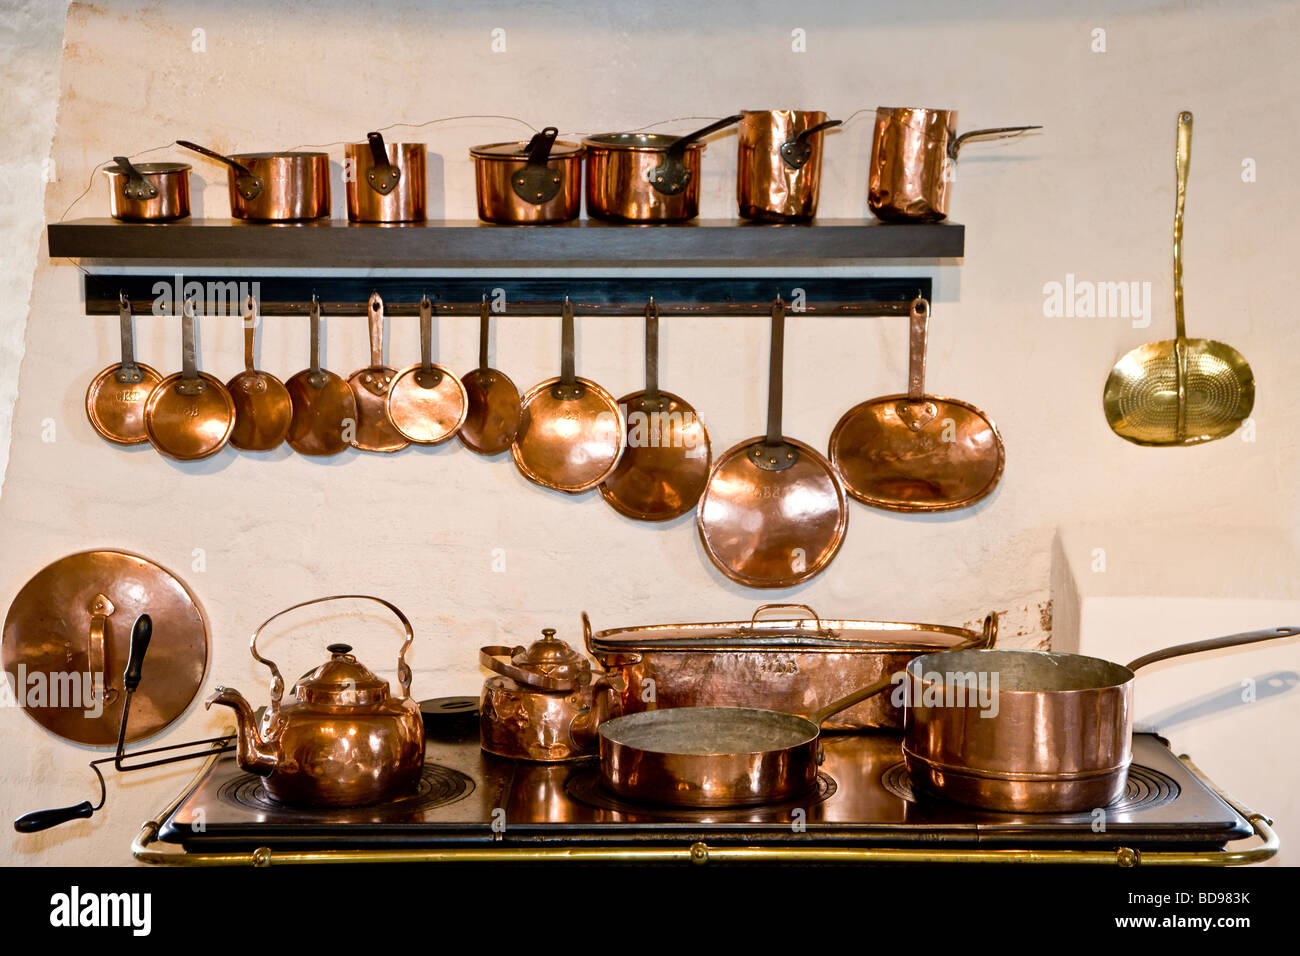 Old copper kitchen equipment - Stock Image